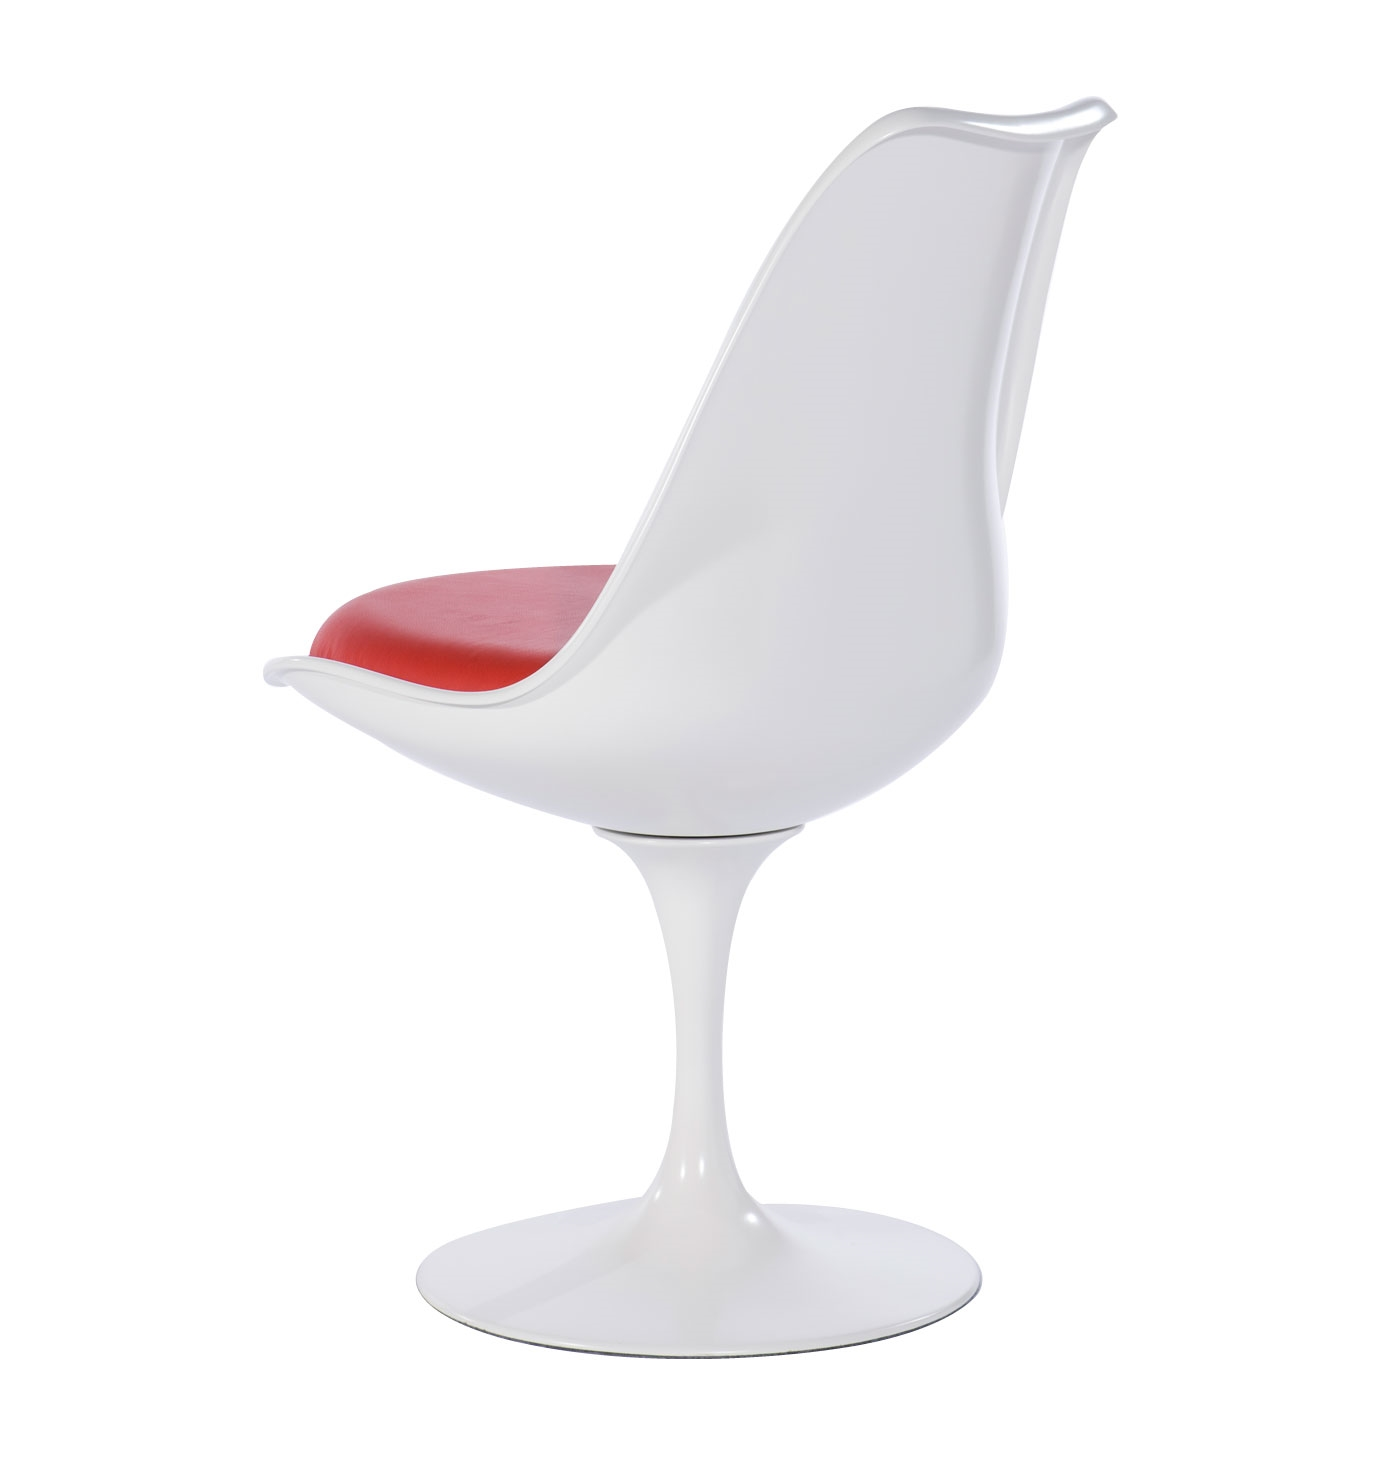 Uncategorized Eero Saarinen Tulip Chair reply eero saarinen tulip chair the grand masters chairs tables white with cuscion red